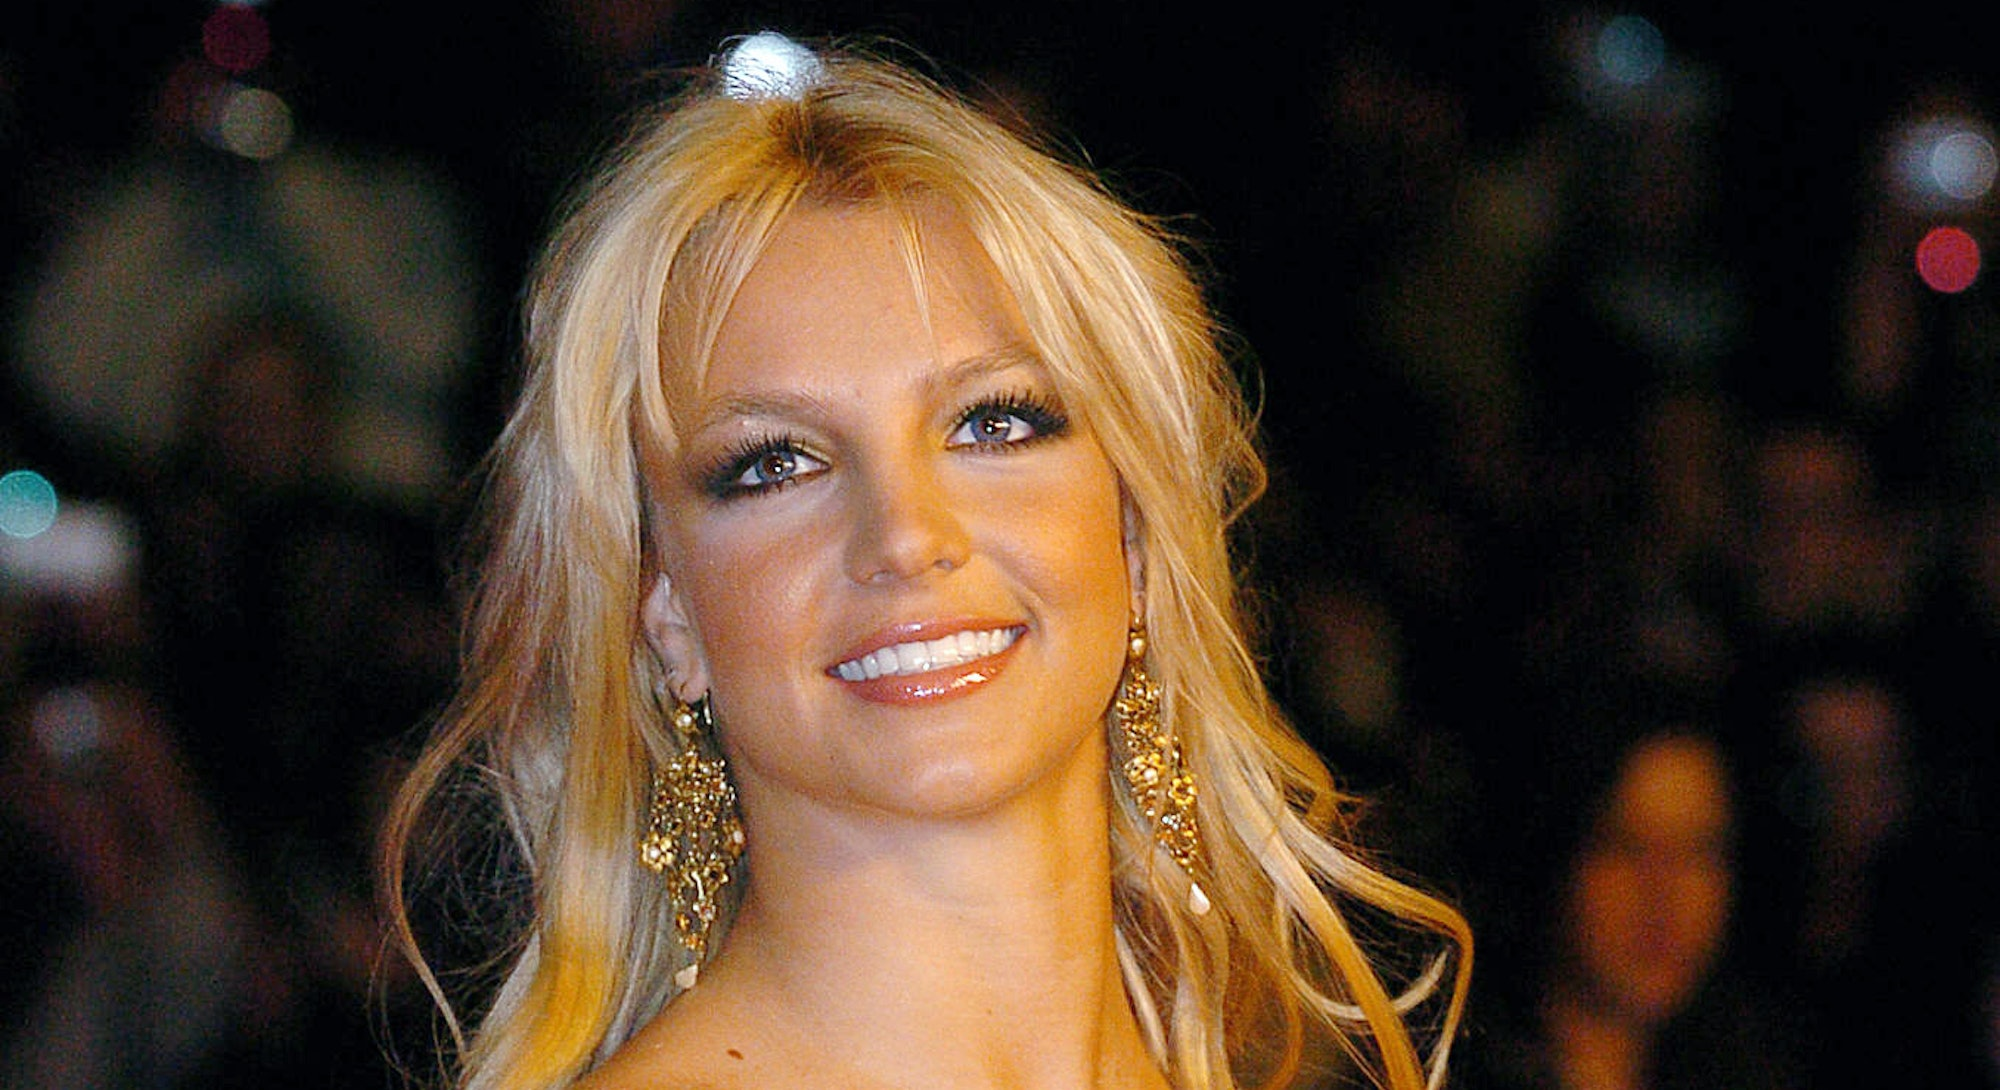 "US rock star Britney Spears arrives 24 January 2004 at Cannes' Palais des Festivals, for France's annual NRJ music awards. The awards are held as the International music industry descends on Cannes, southern France, for the annual MIDEM trade jamboree, the music world's premier trade show. The NRJ pop music station's awards are based on a public vote, with around 50 artists competing for 15 awards. NRJ is a popular commercial FM radio network whose name, when pronounced in French, makes the word ""energy"". AFP PHOTO PASCAL GUYOT (Photo by Pascal GUYOT / AFP) (Photo by PASCAL GUYOT/AFP via Getty Images)"